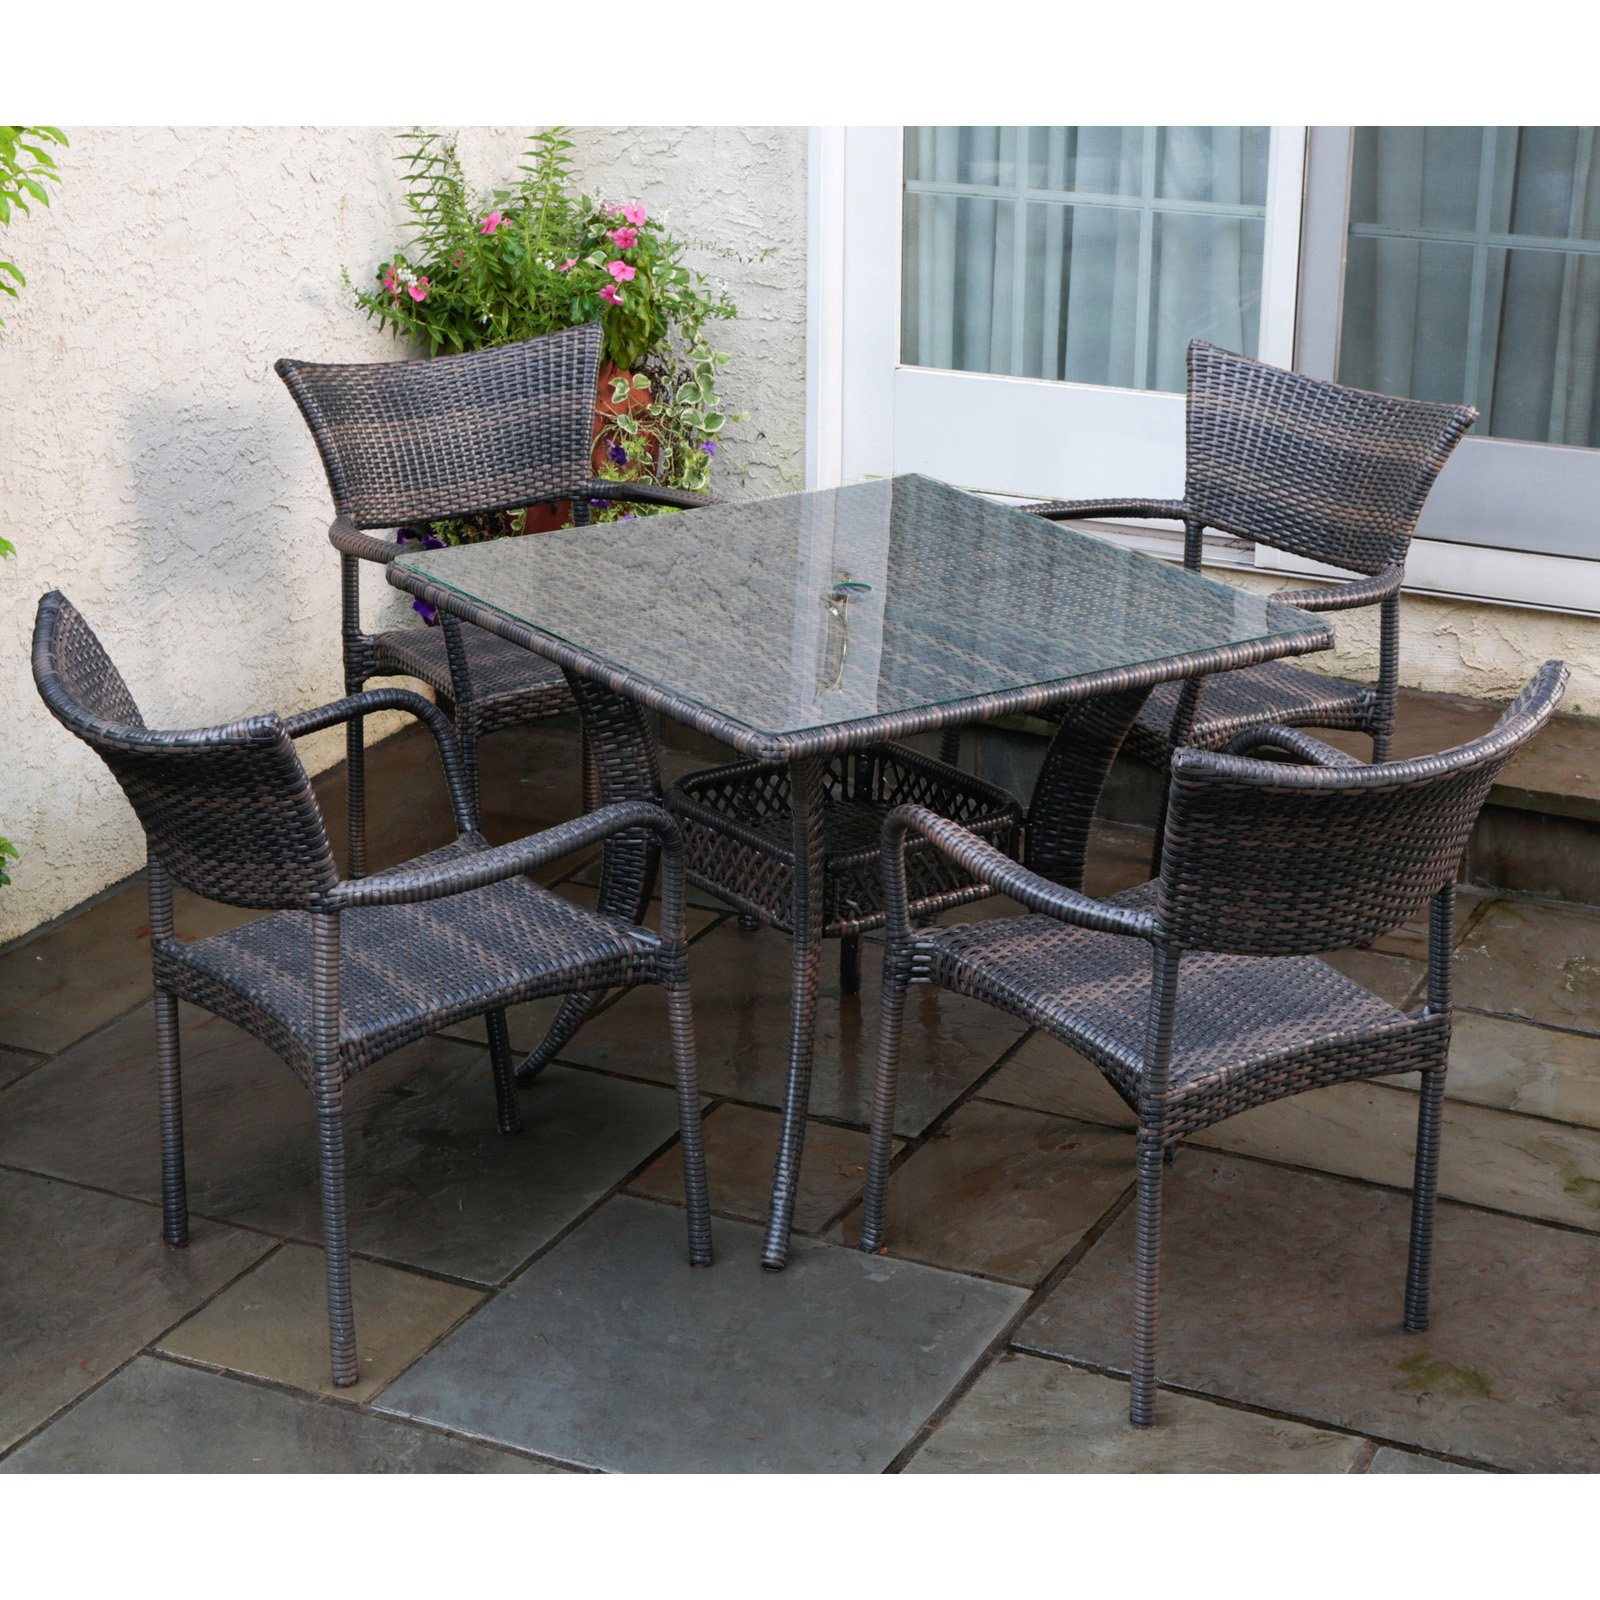 Alfresco Tutto 5 Piece Wicker Patio Dining Set - 43-1306